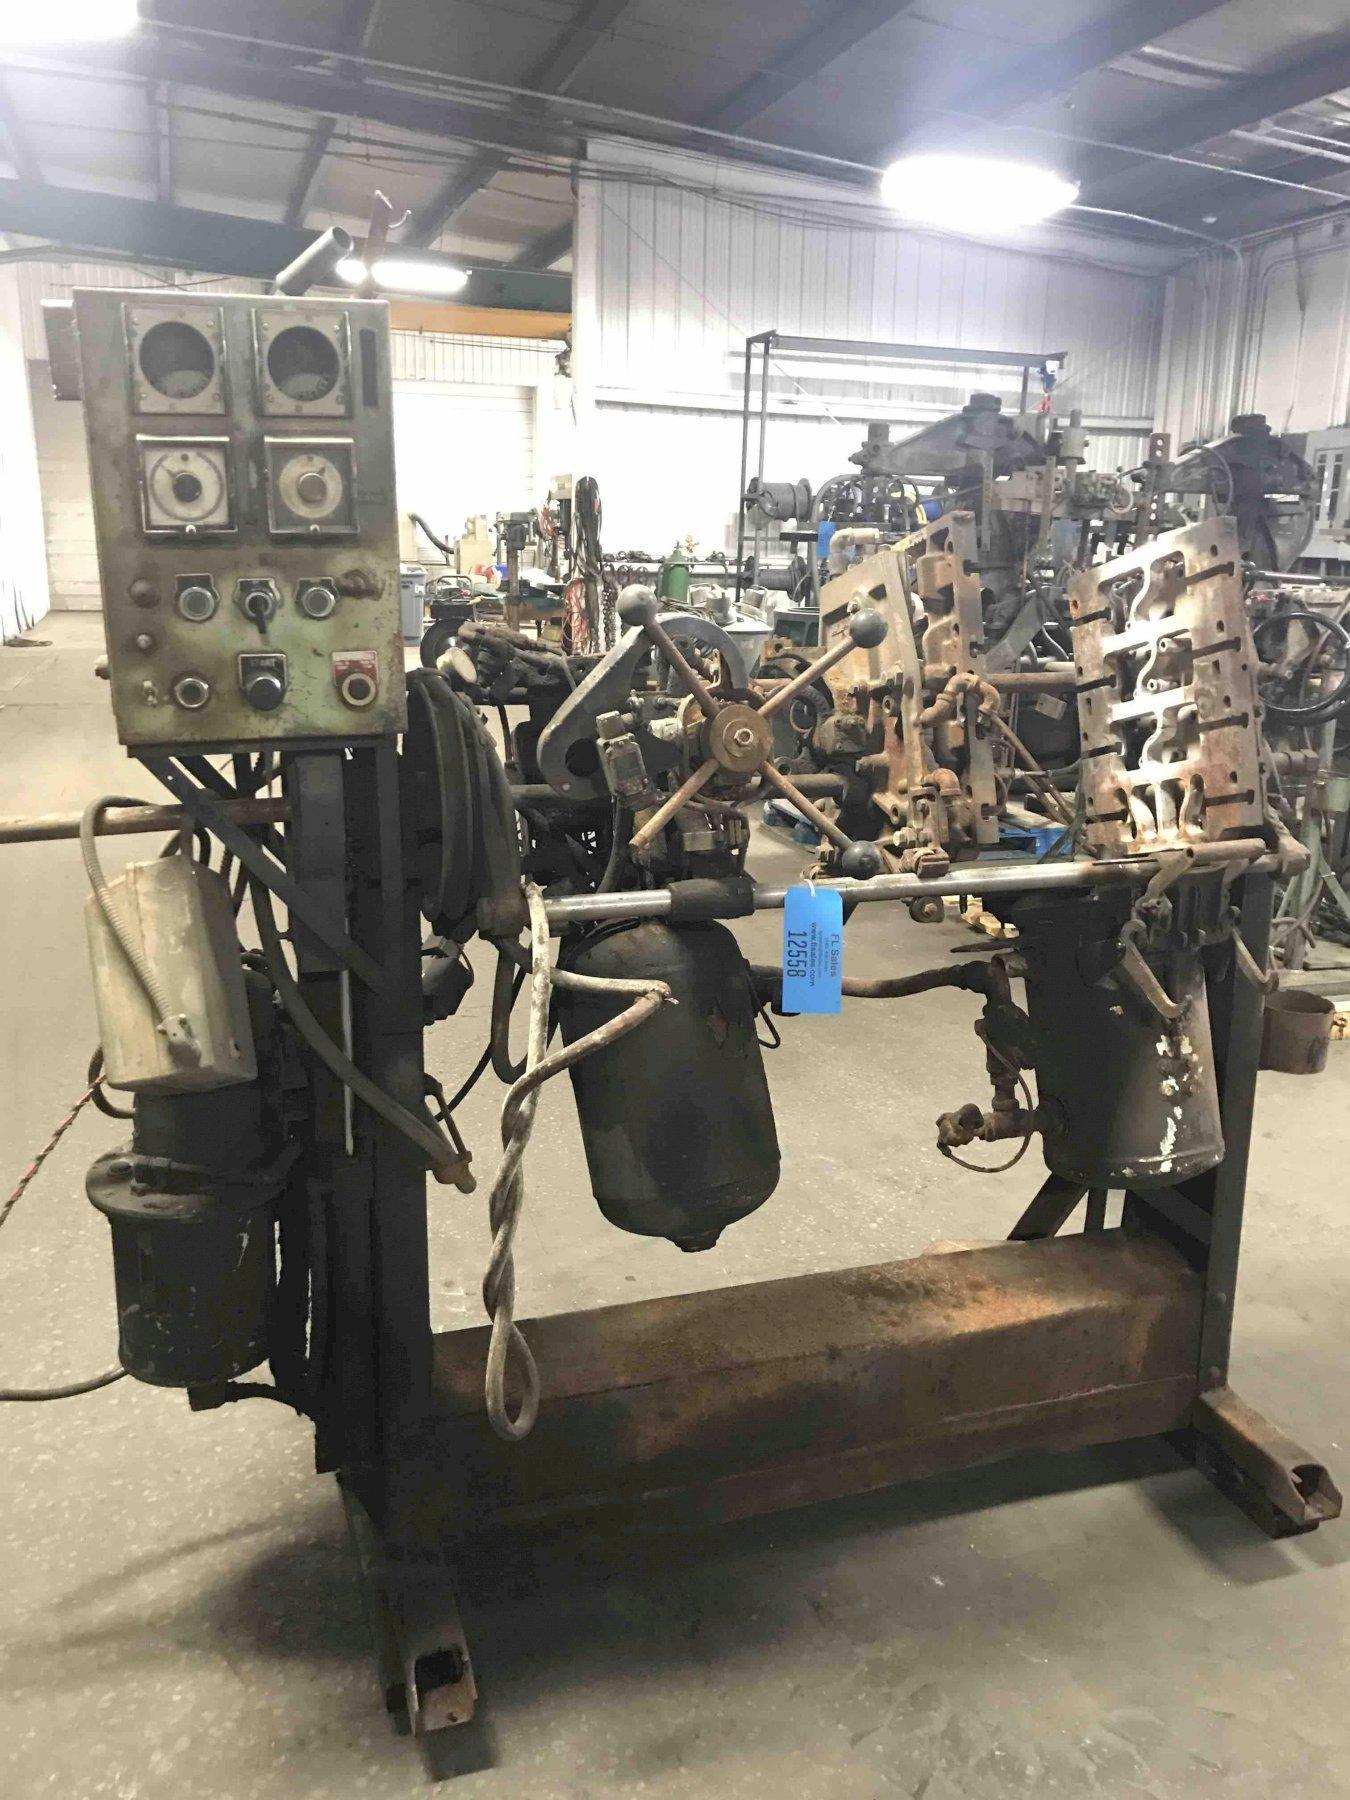 Dependable model 200fa shell core machine no serial number, no gas panel